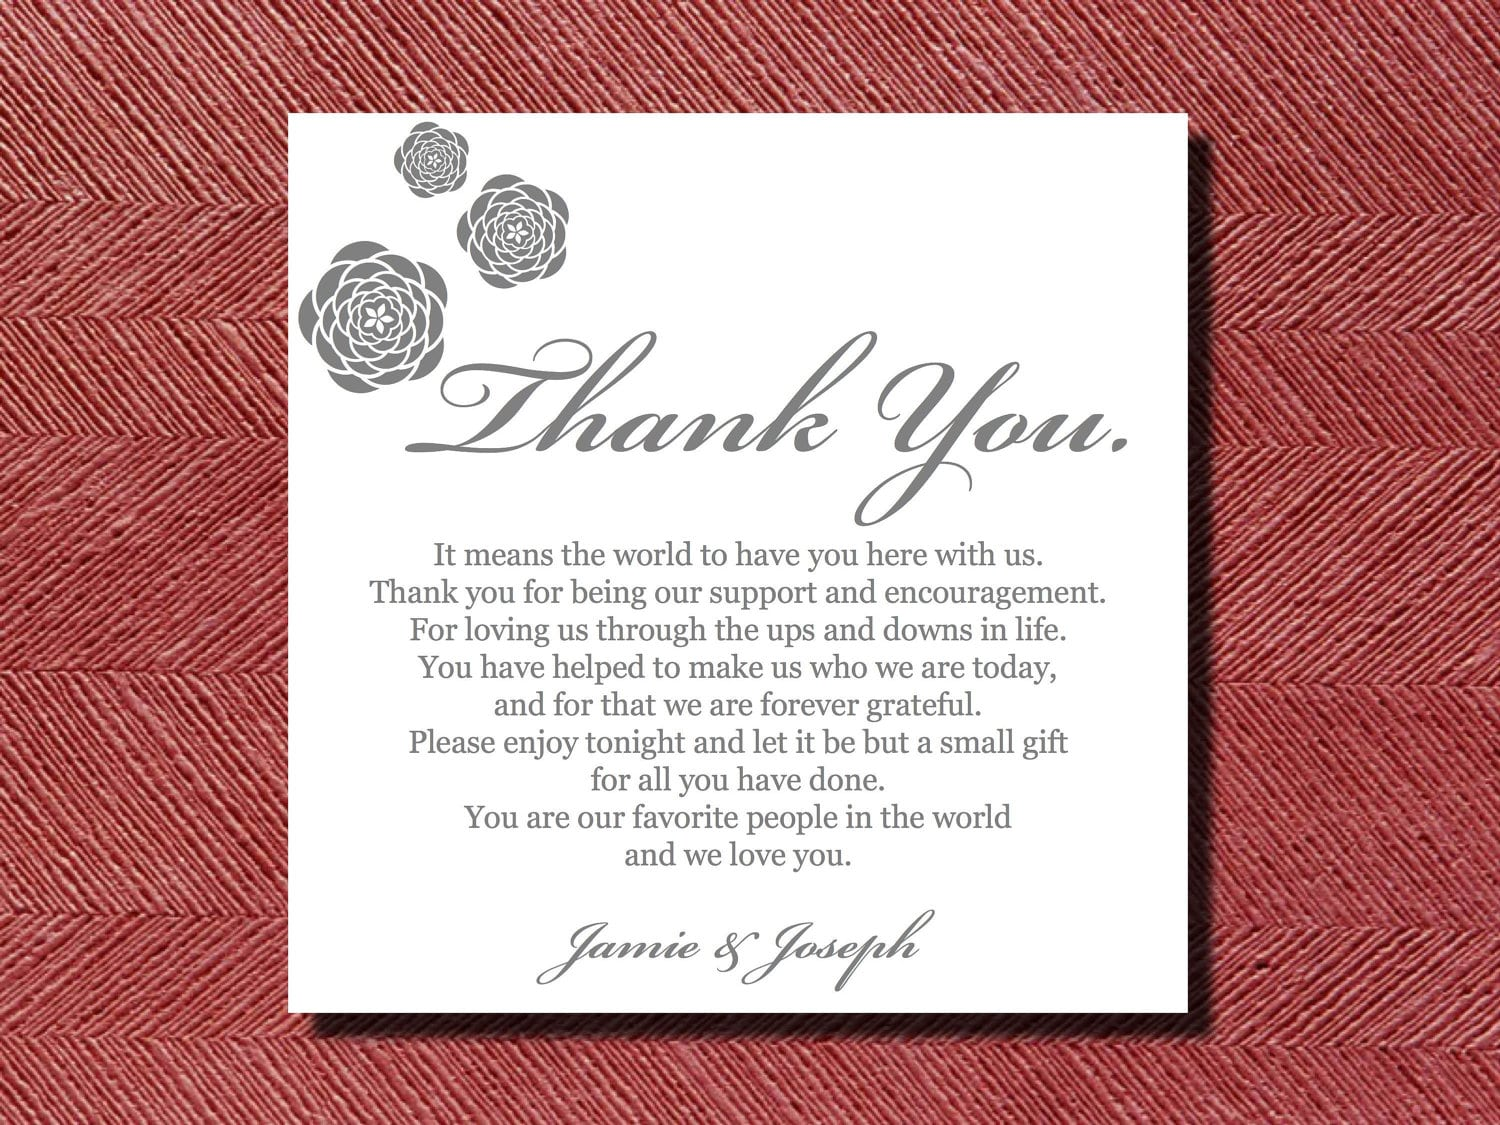 Bridal Shower Thank You Cards Templates Ideas